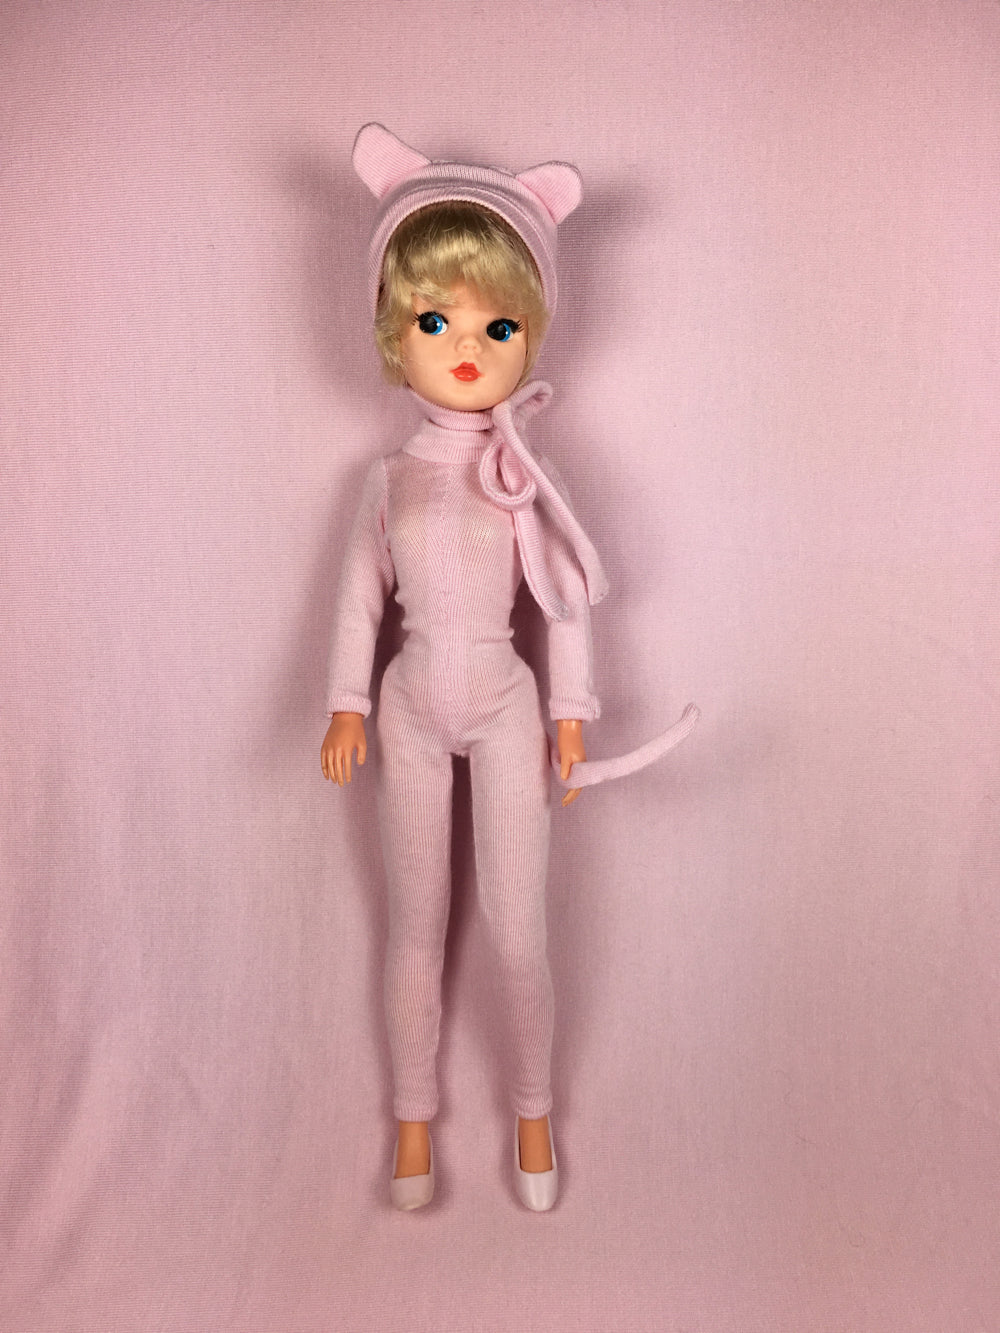 Sindy in pink mouse outfit